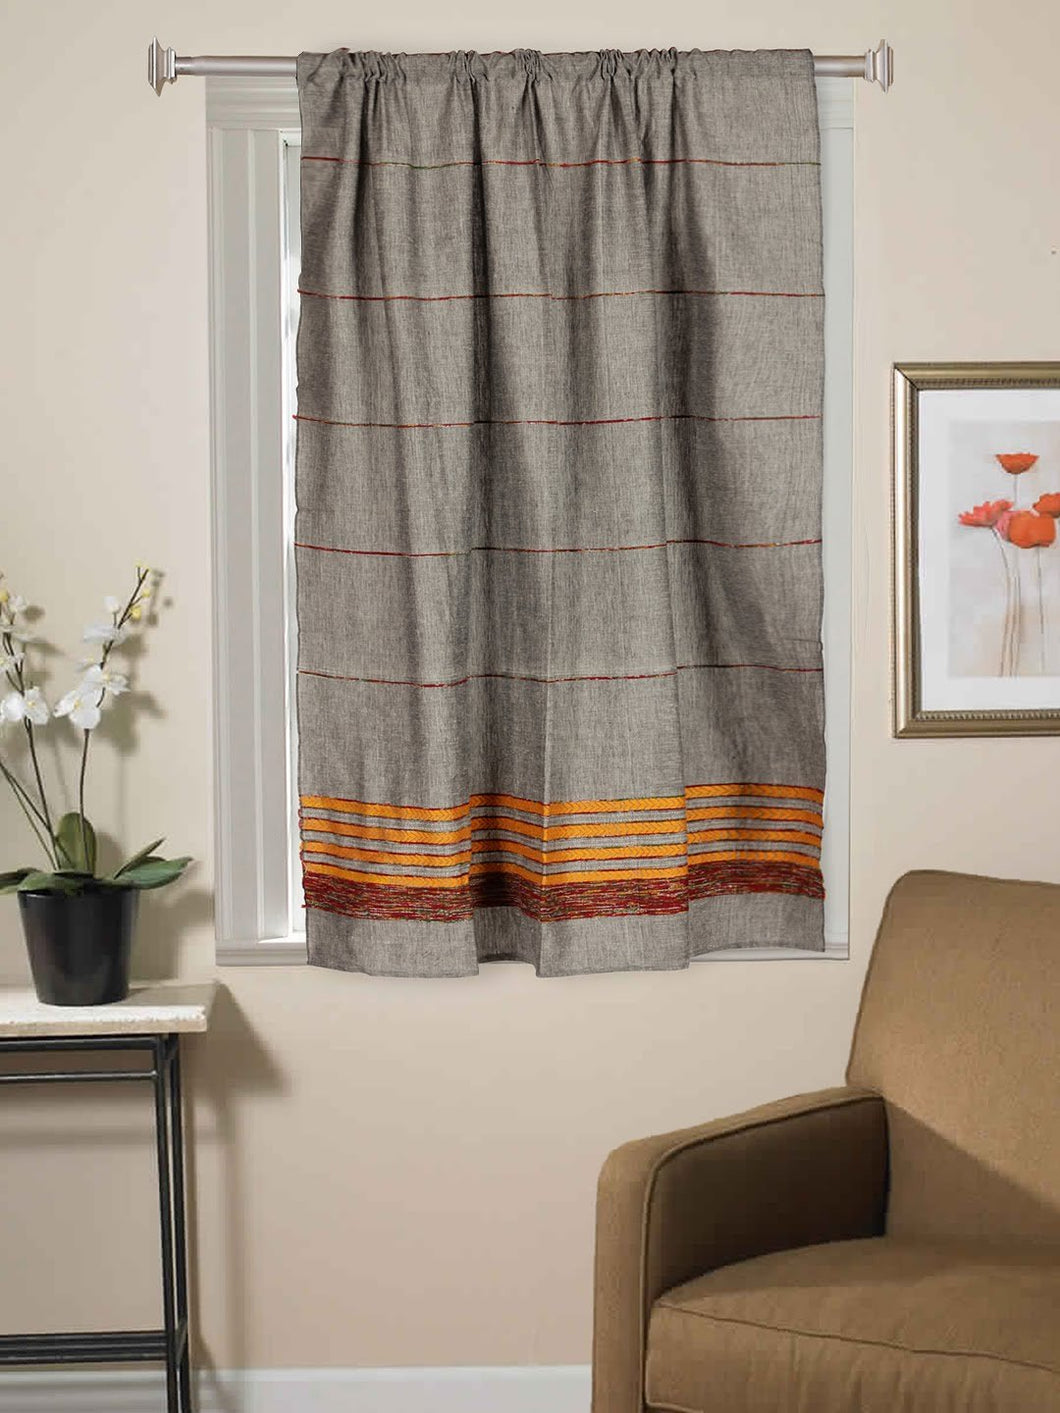 Handloom Cotton Khesh Grey Rod Pocket Window Curtain - Arteastri